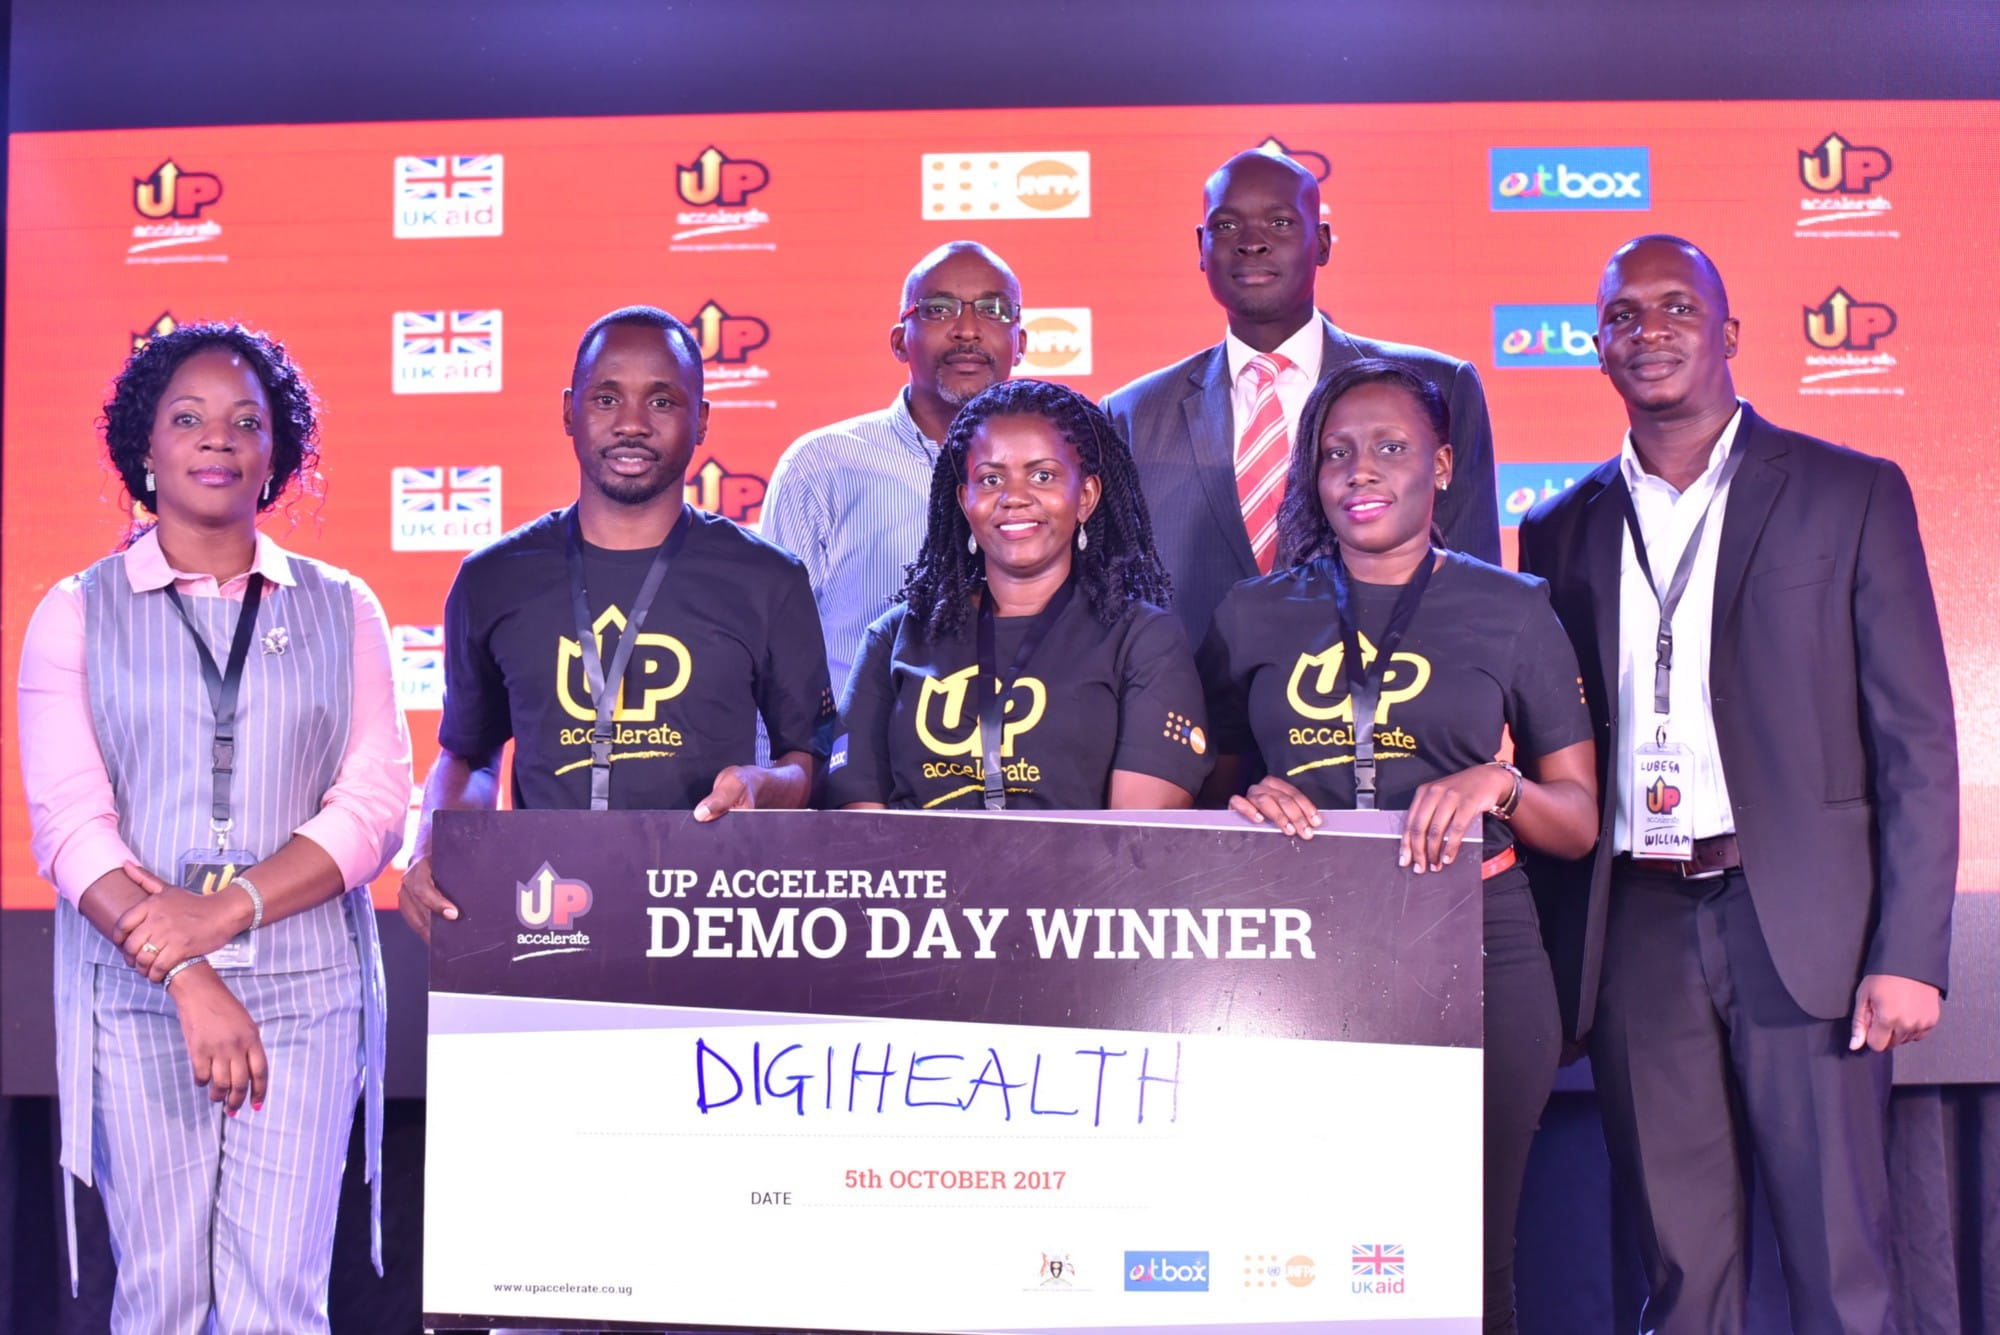 Team Digihealth pose for a photo with the judges at the Up Accelerate Demo day after being announced winners.